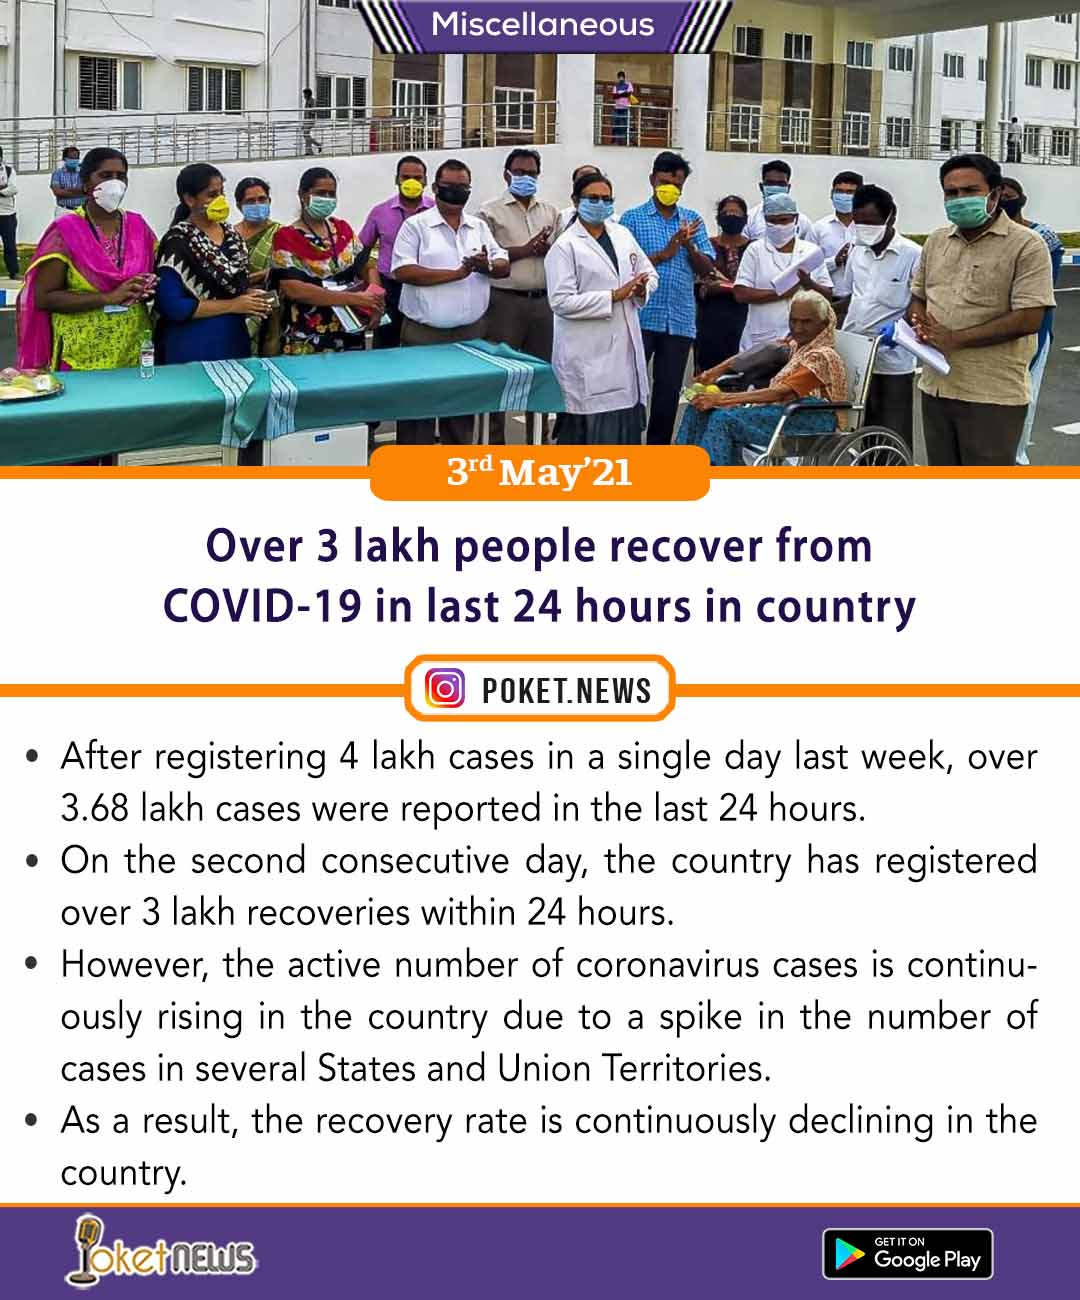 Over 3 lakh people recover from COVID-19 in last 24 hours in country